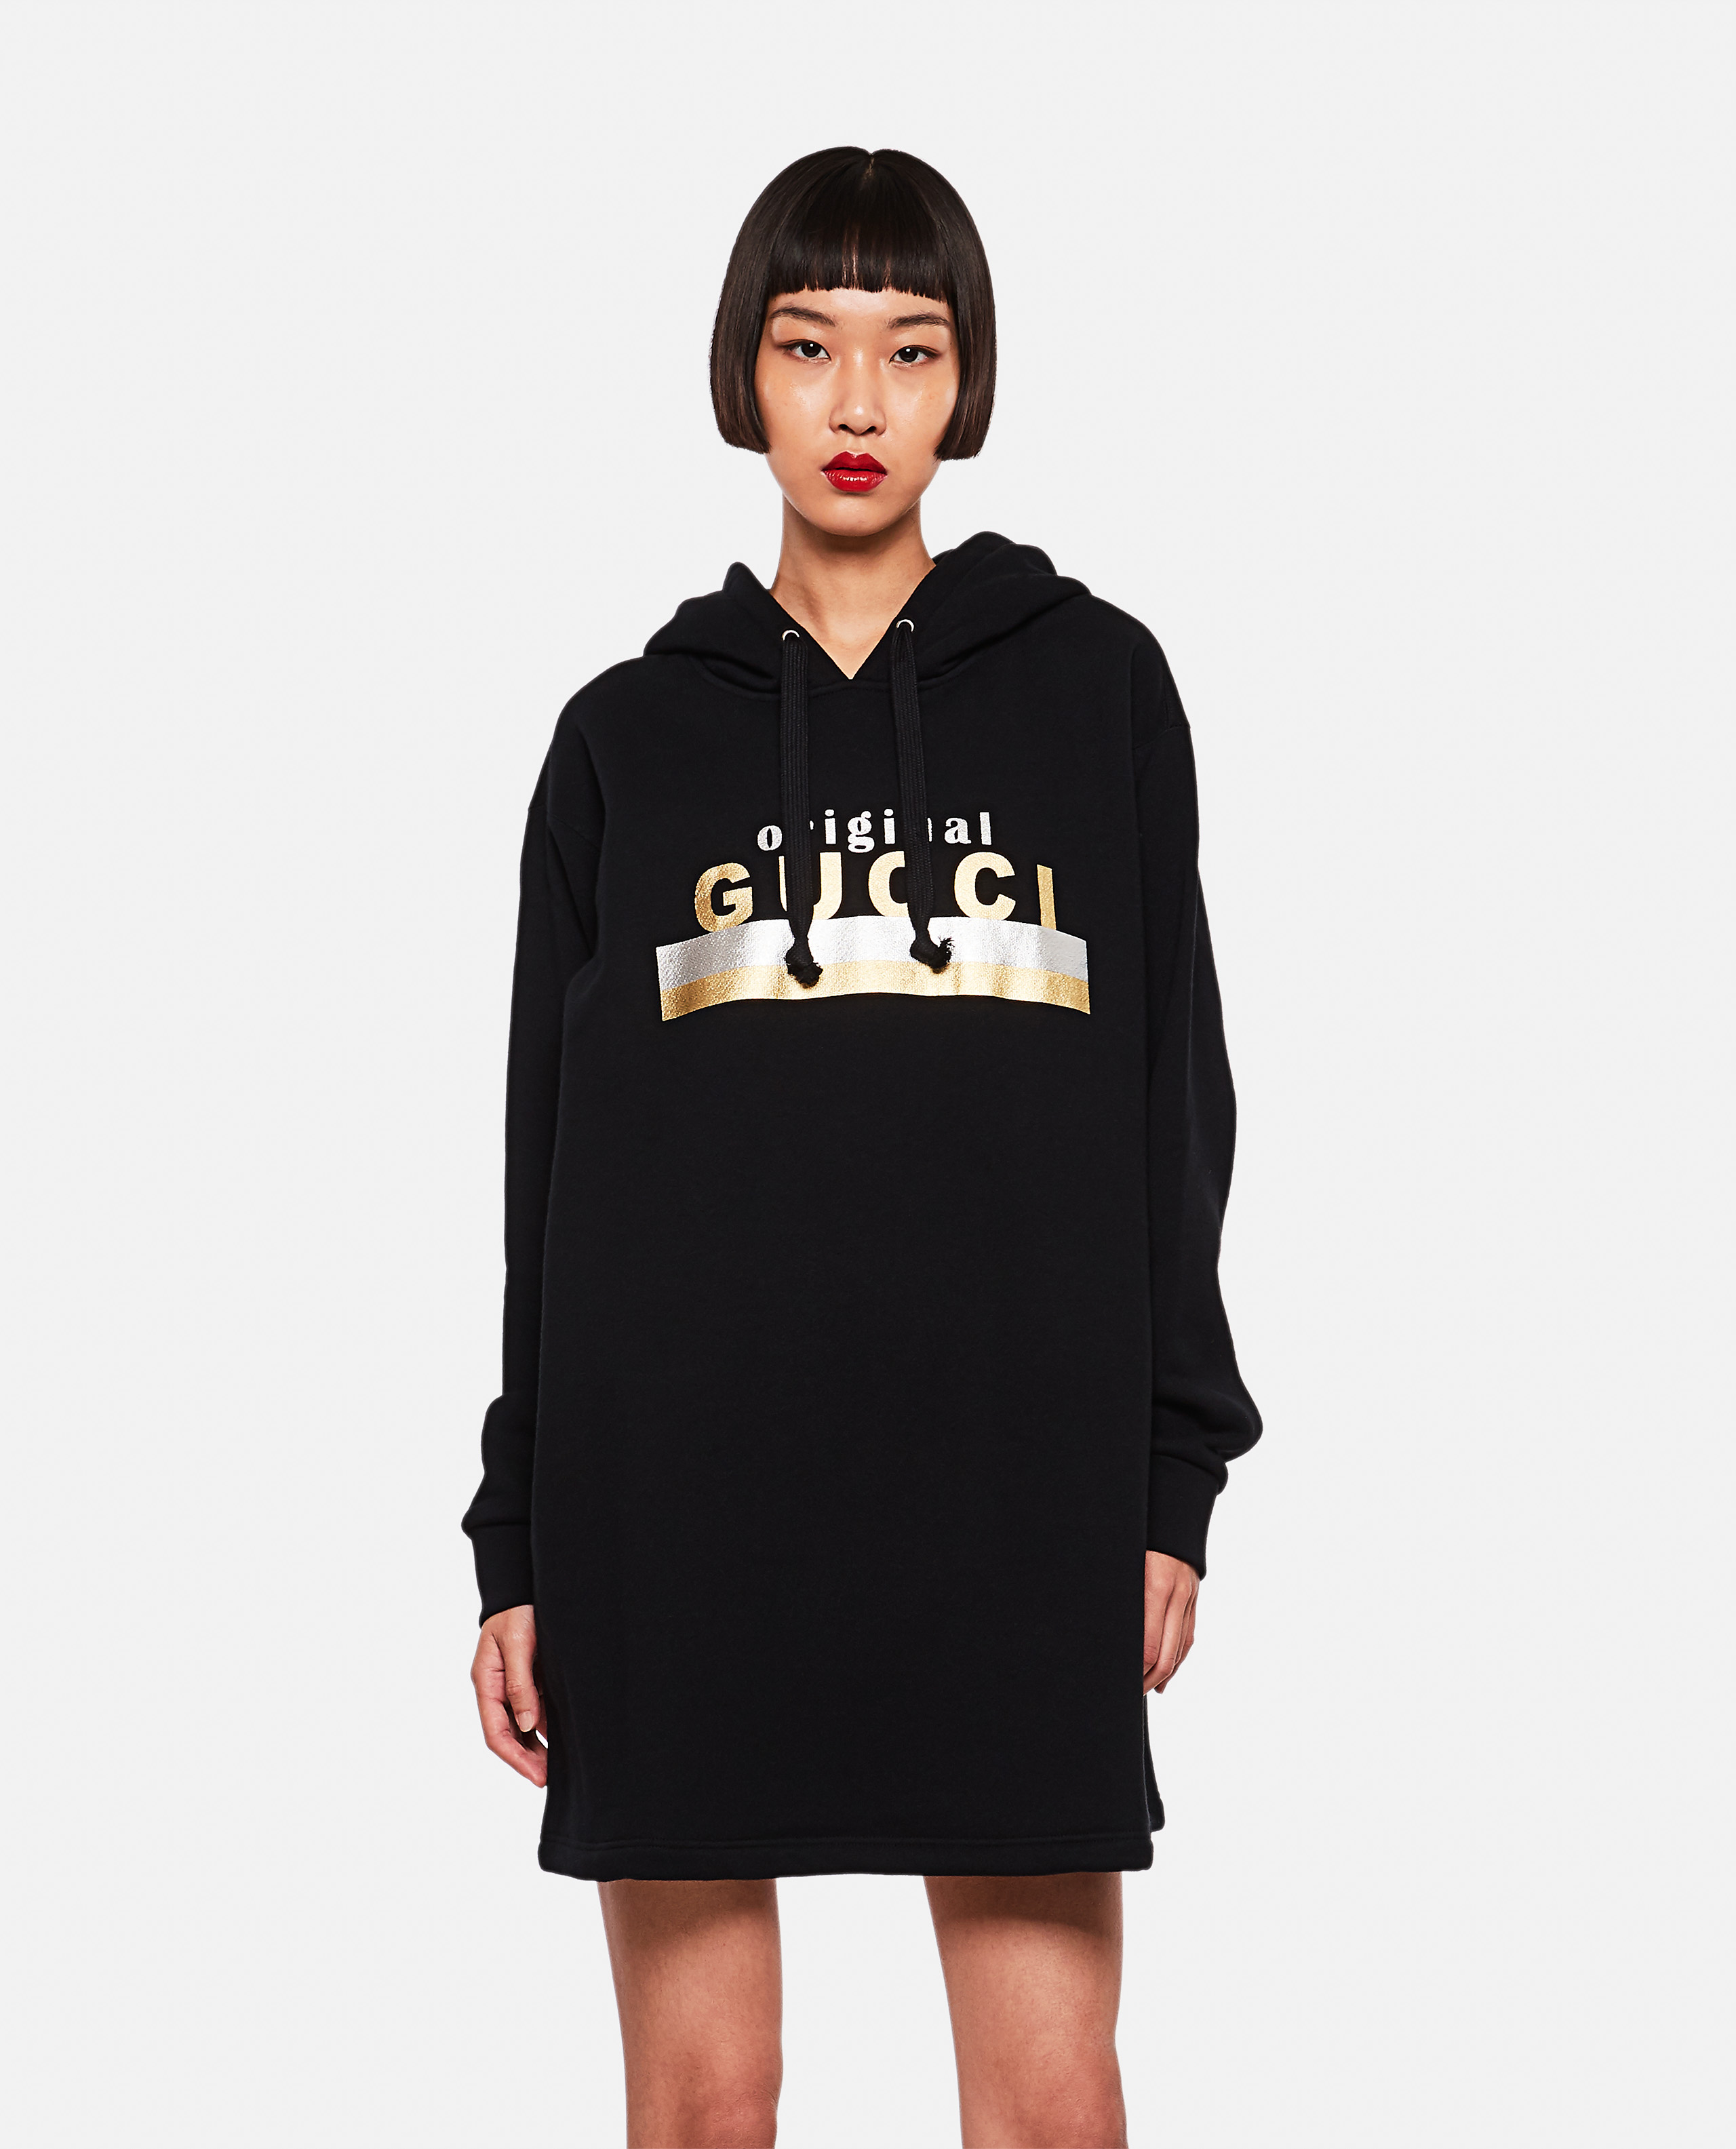 Hooded dress with 'Original Gucci' print